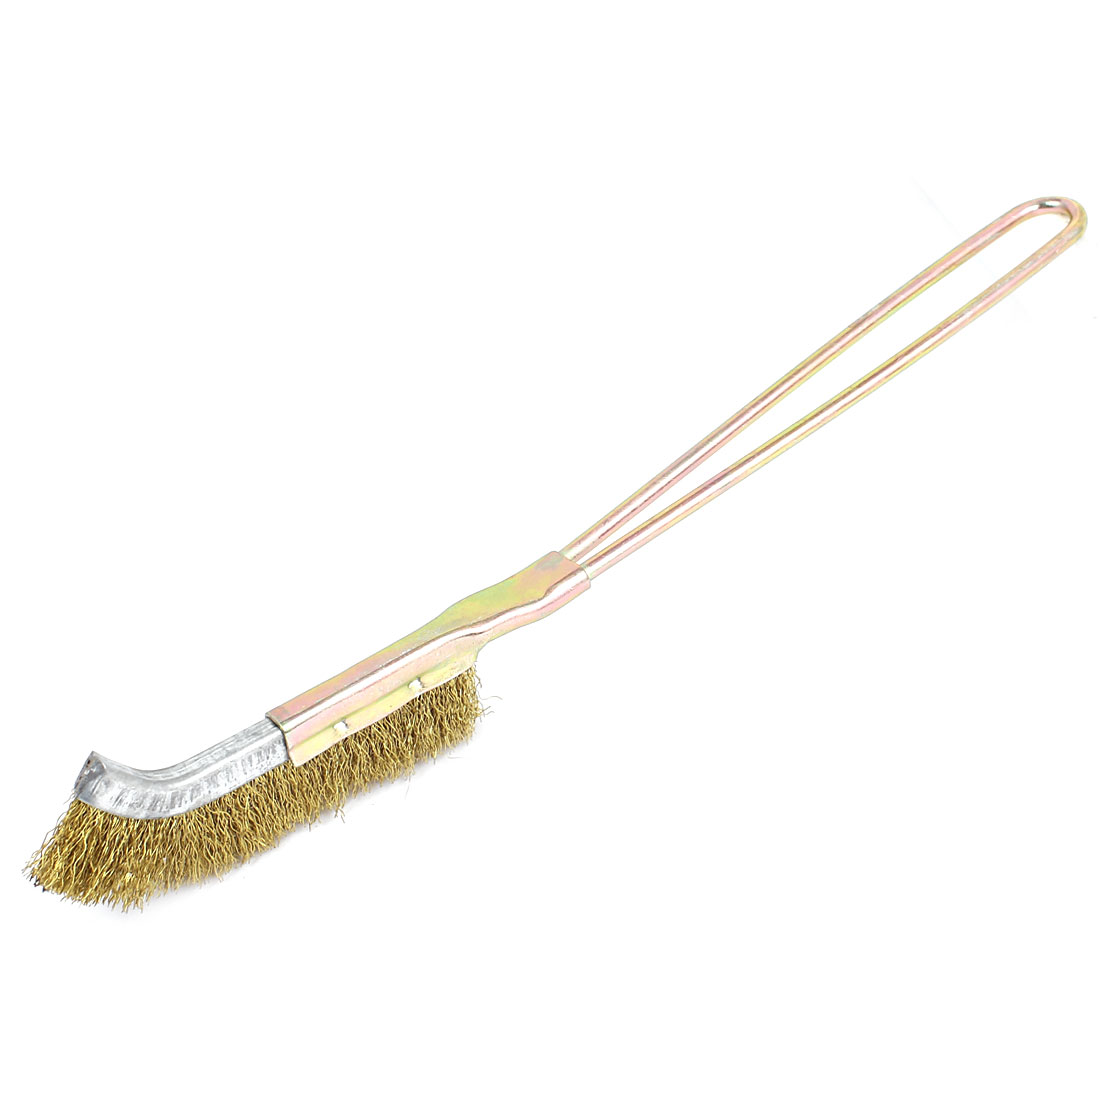 22cm Long Handheld Metal Handle Bent Head Brass Wire Cleaning Brush